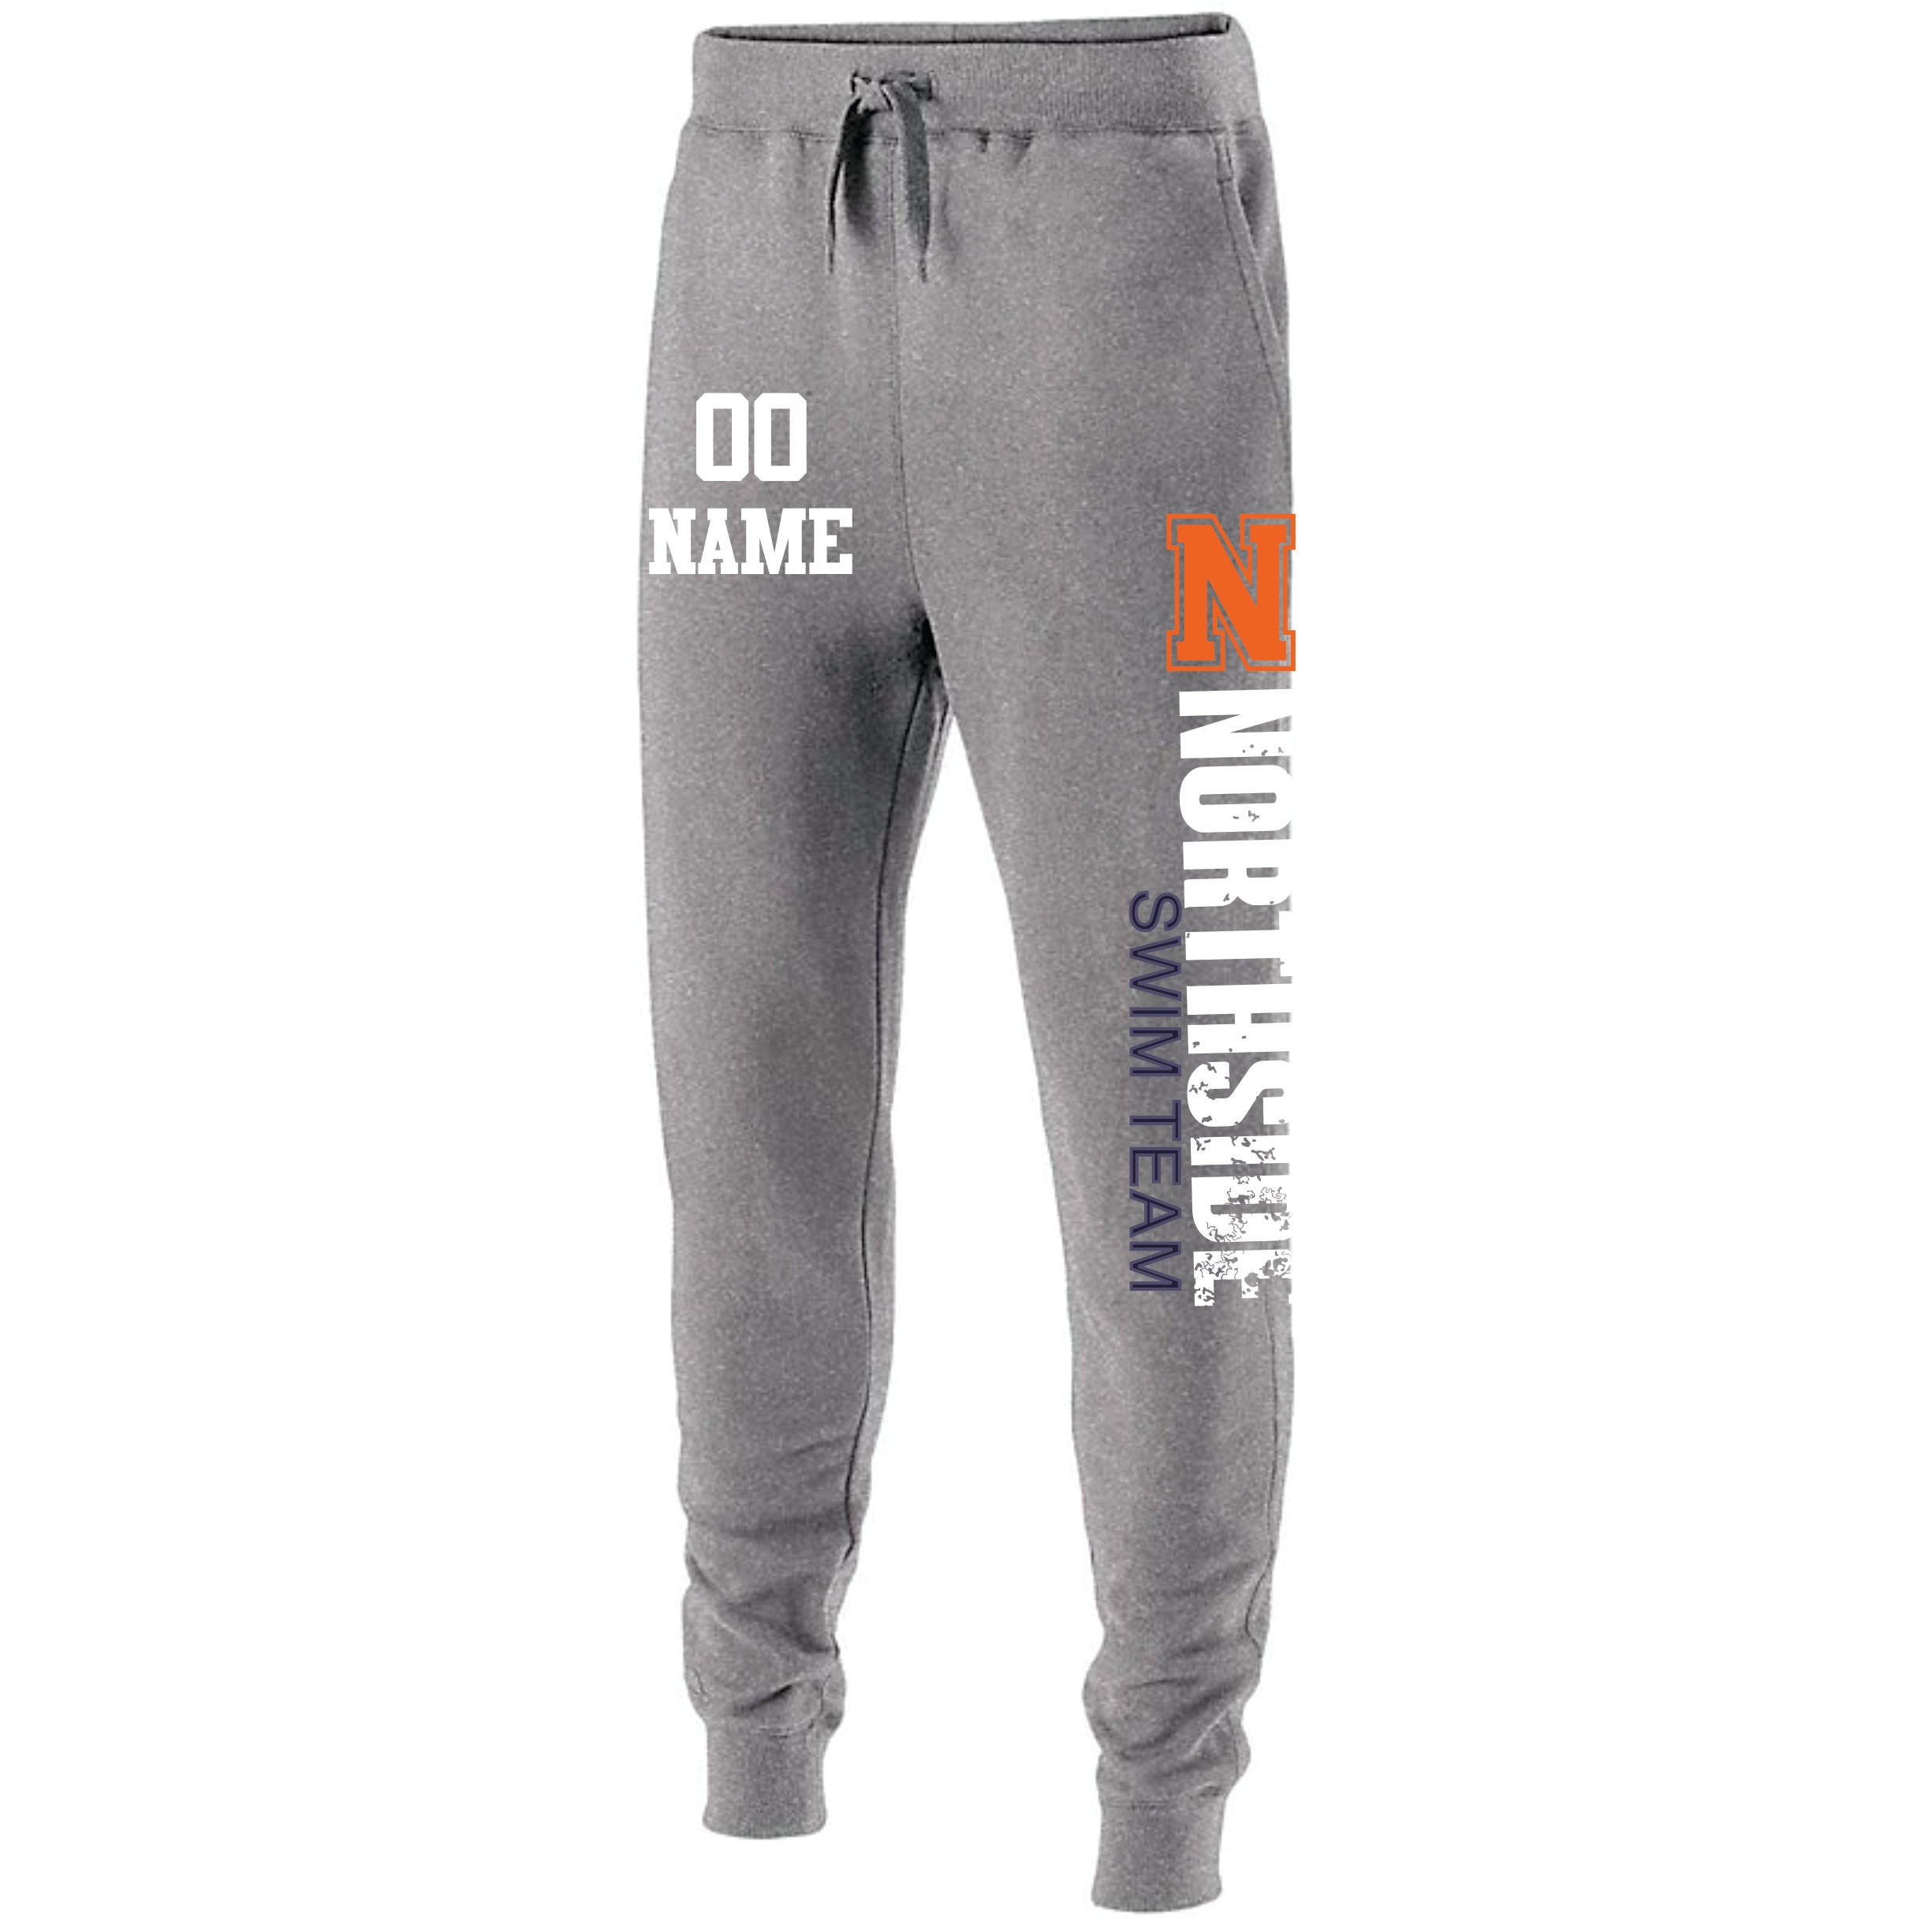 Northside swim team jogger  sweatpants